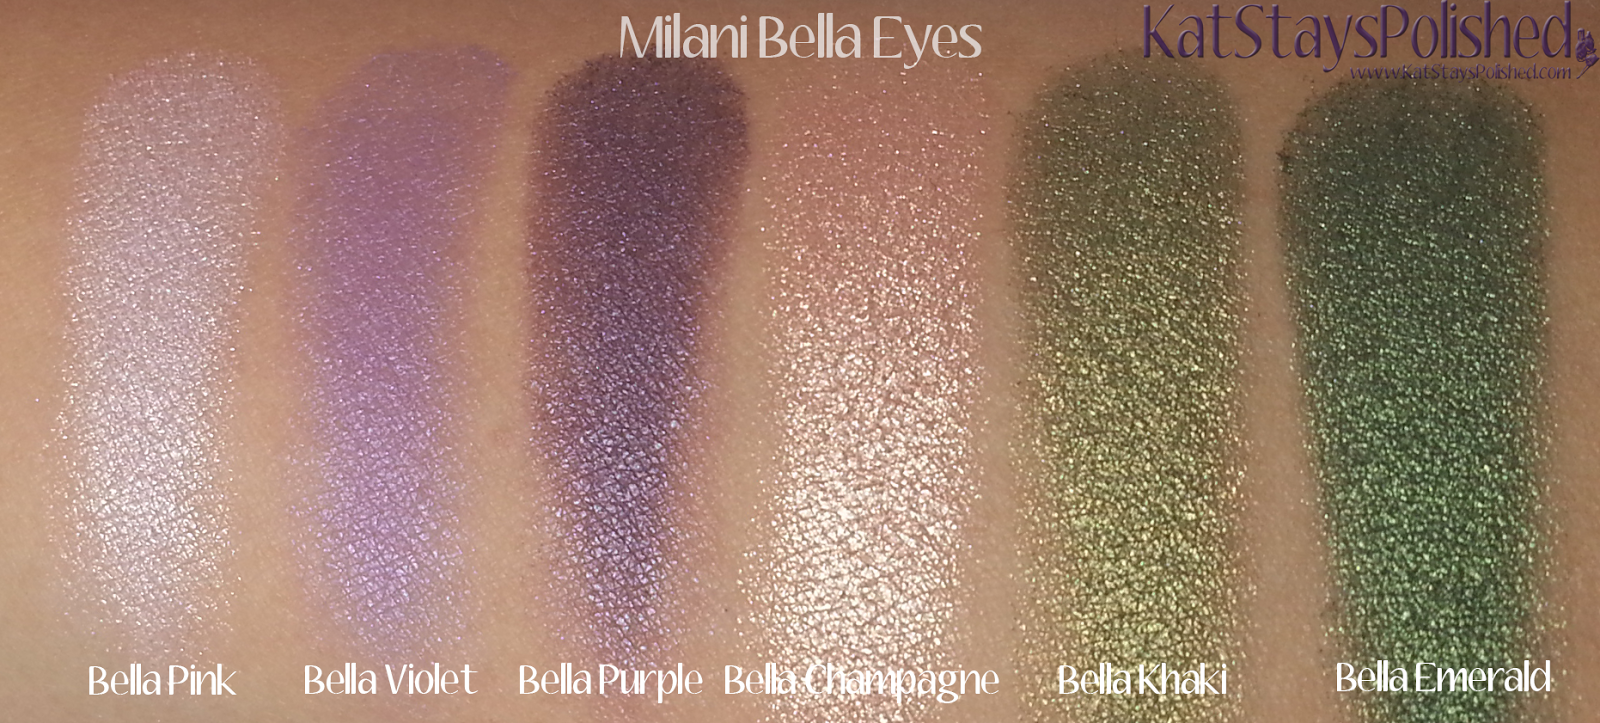 Milani Bella Eyes Gel Powder Eye Shadow - Swatches 13-18 | Kat Stays Polished